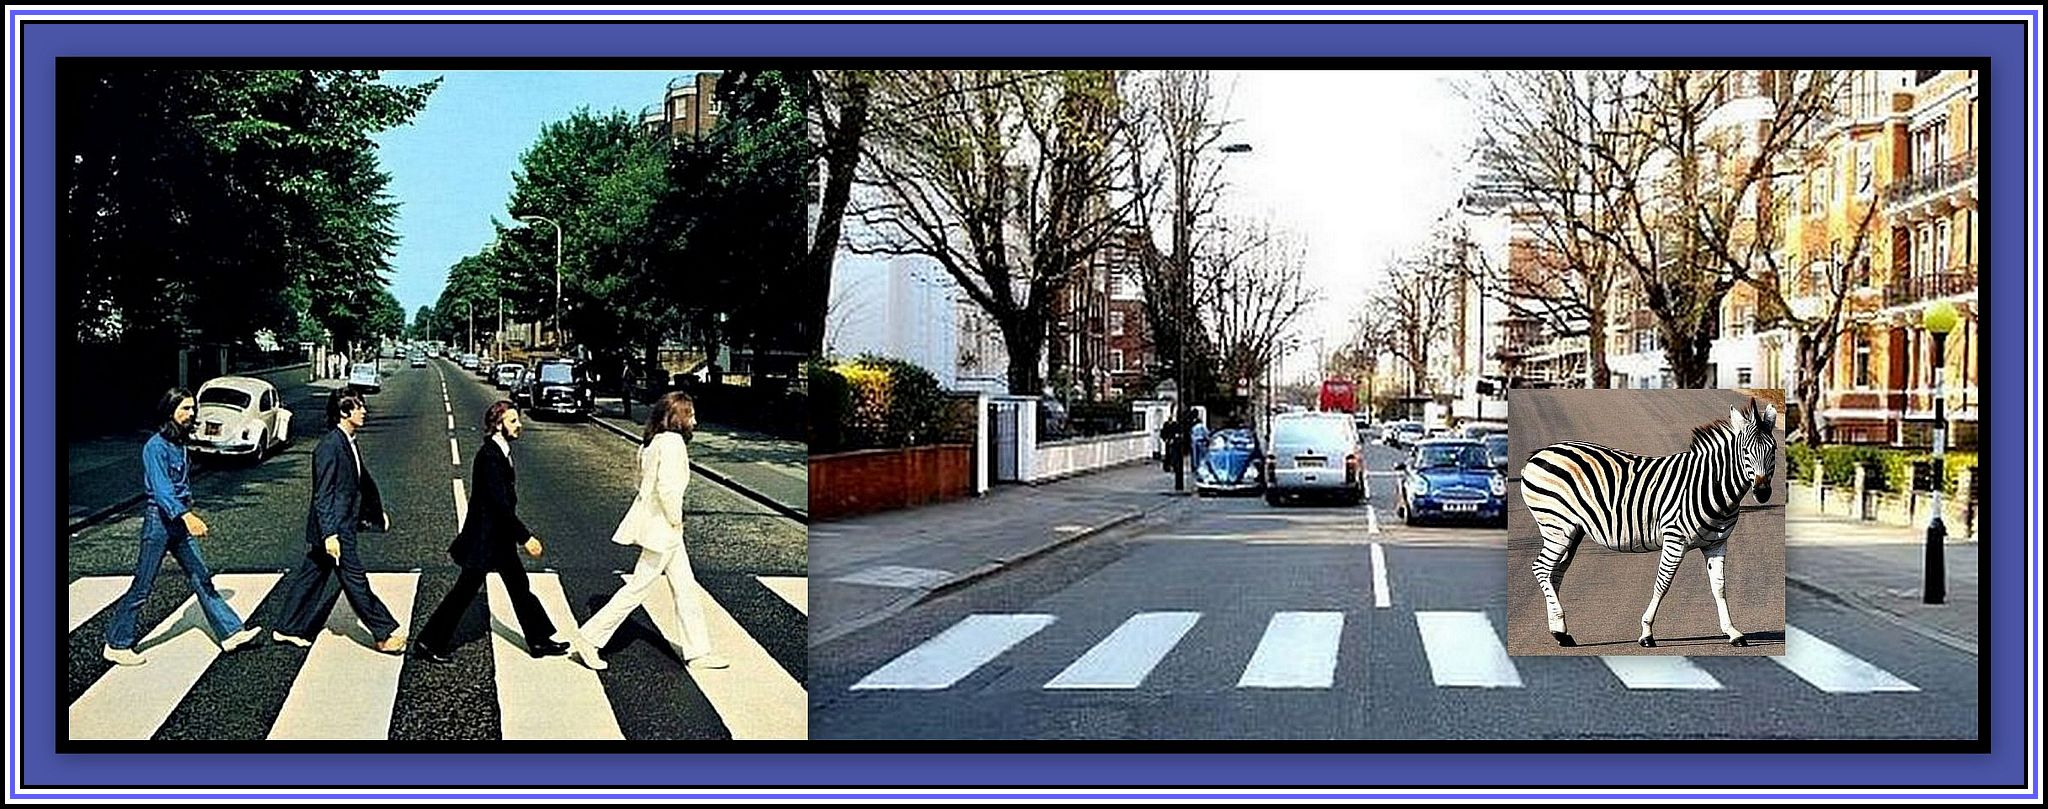 Abbey Road Zebra Collage